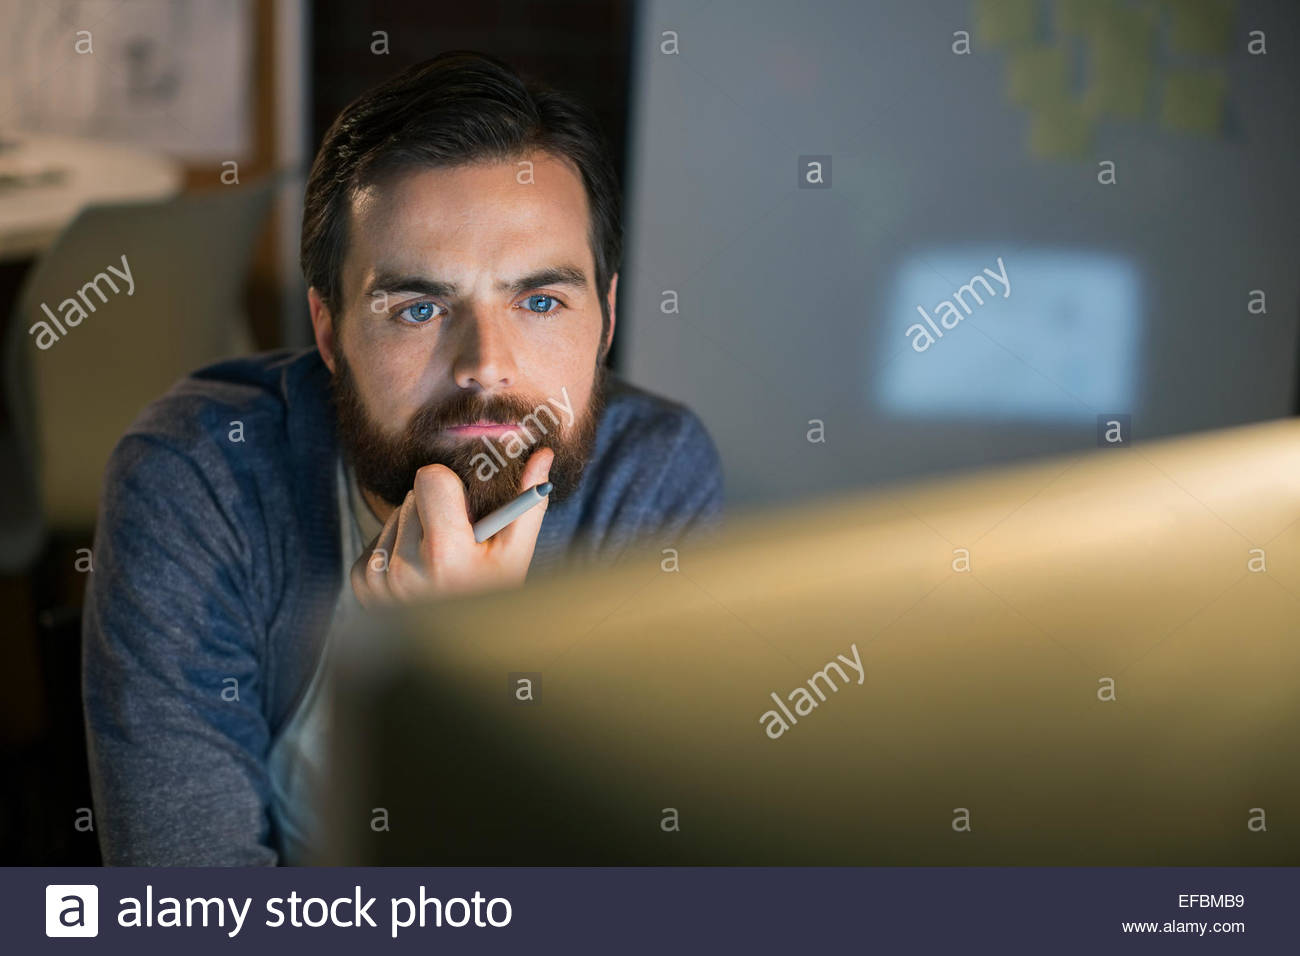 Serious businessman working late at computer in office - Stock Image